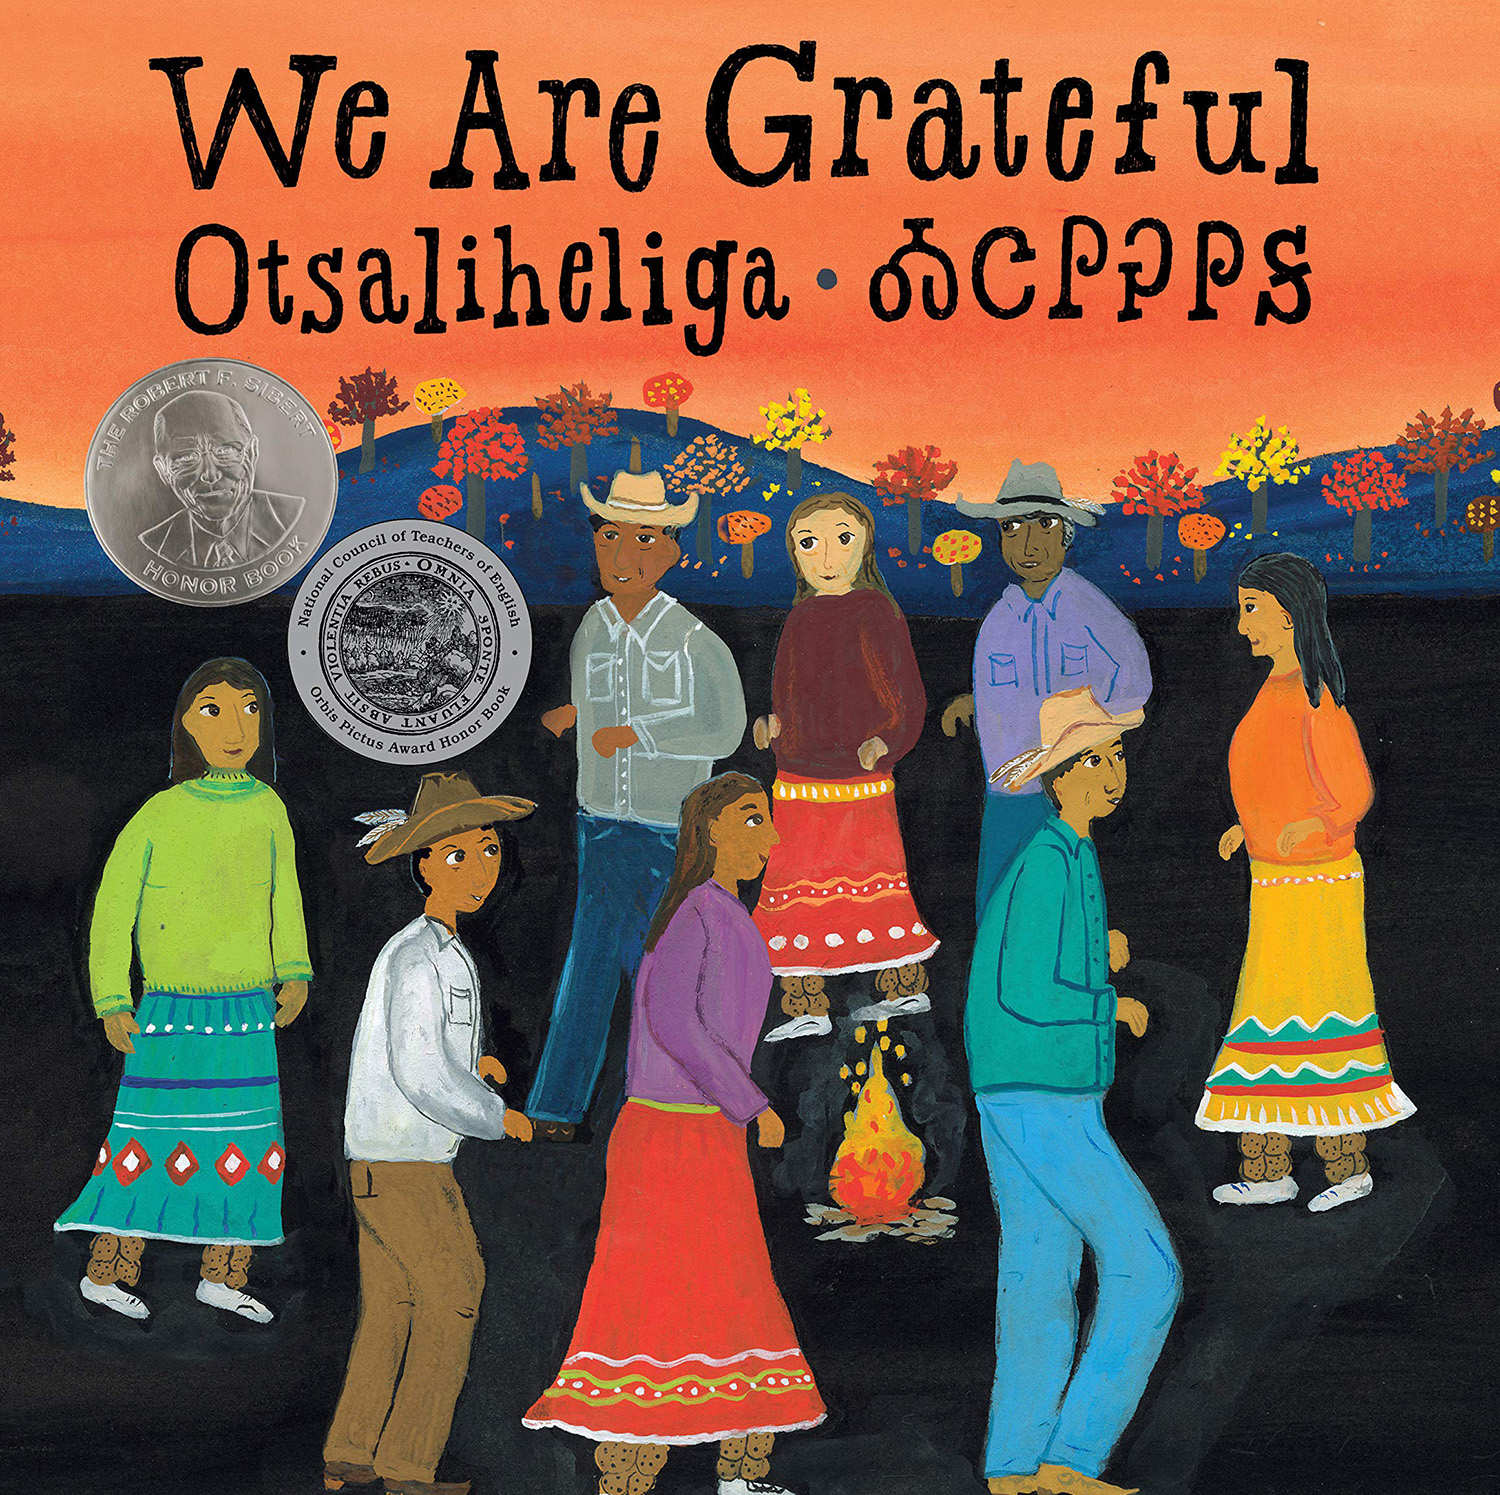 We Are Grateful/Ostalihalega by Traci Sorell